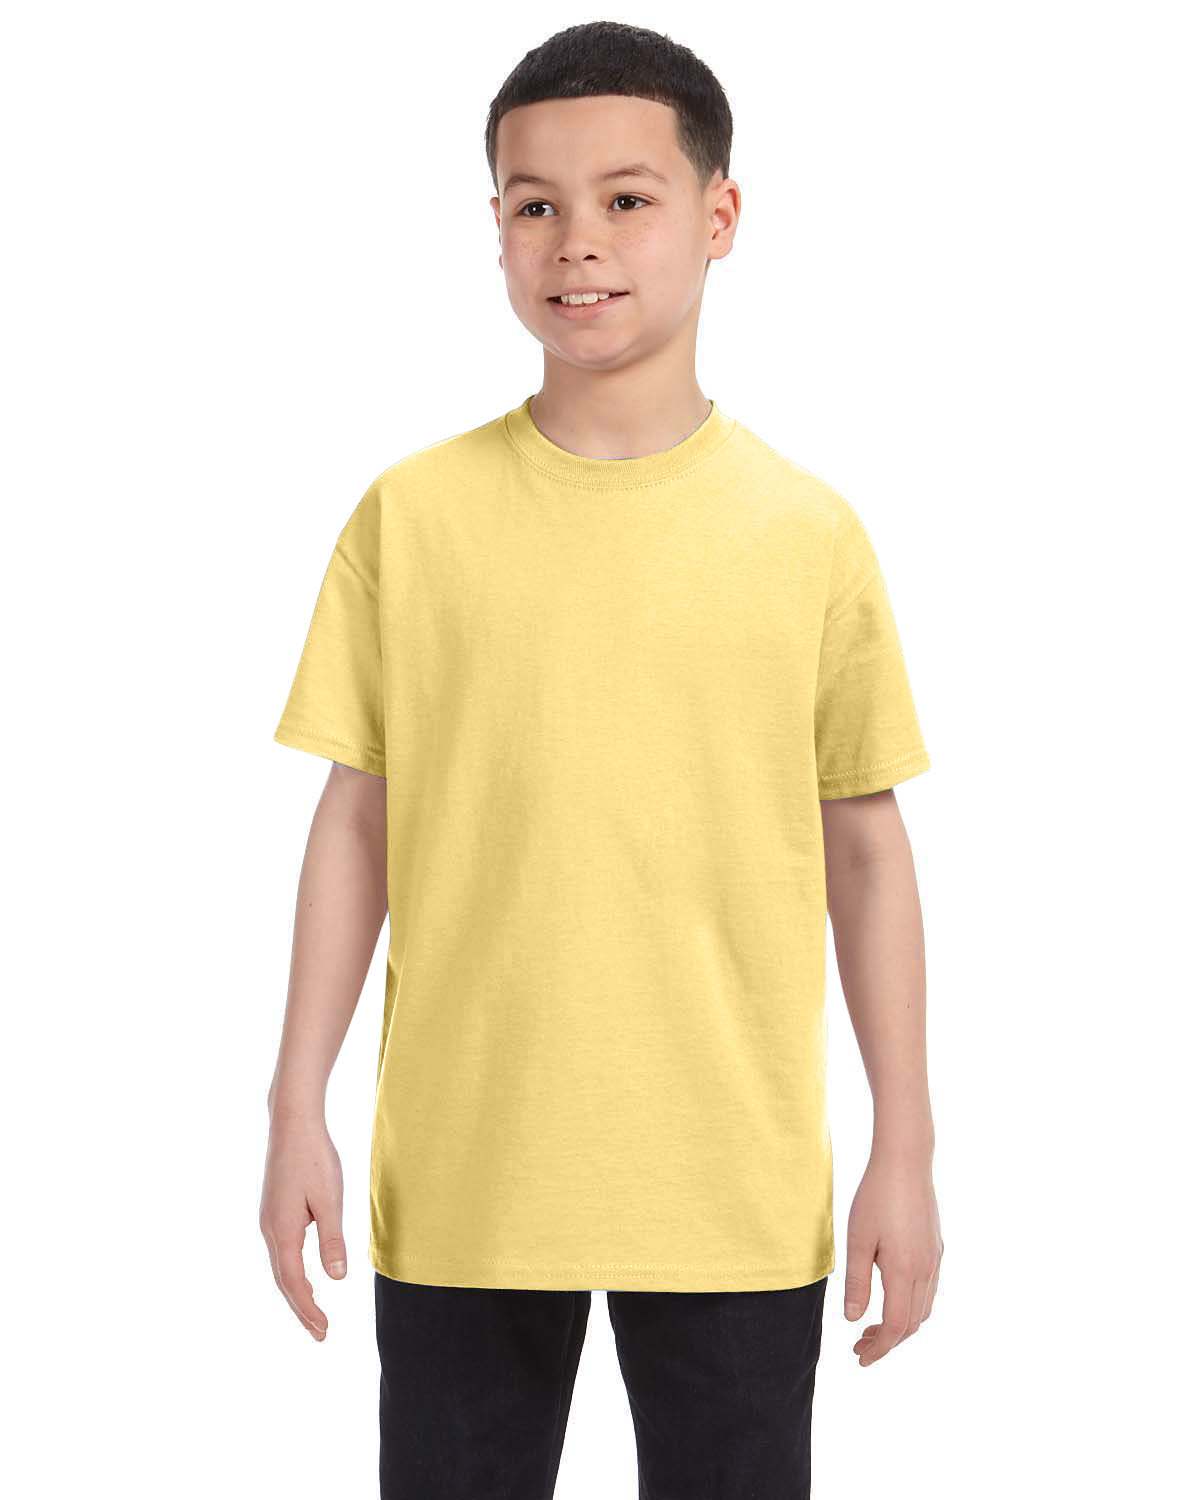 Hanes Youth Authentic-T T-Shirt DAFFODIL YELLOW